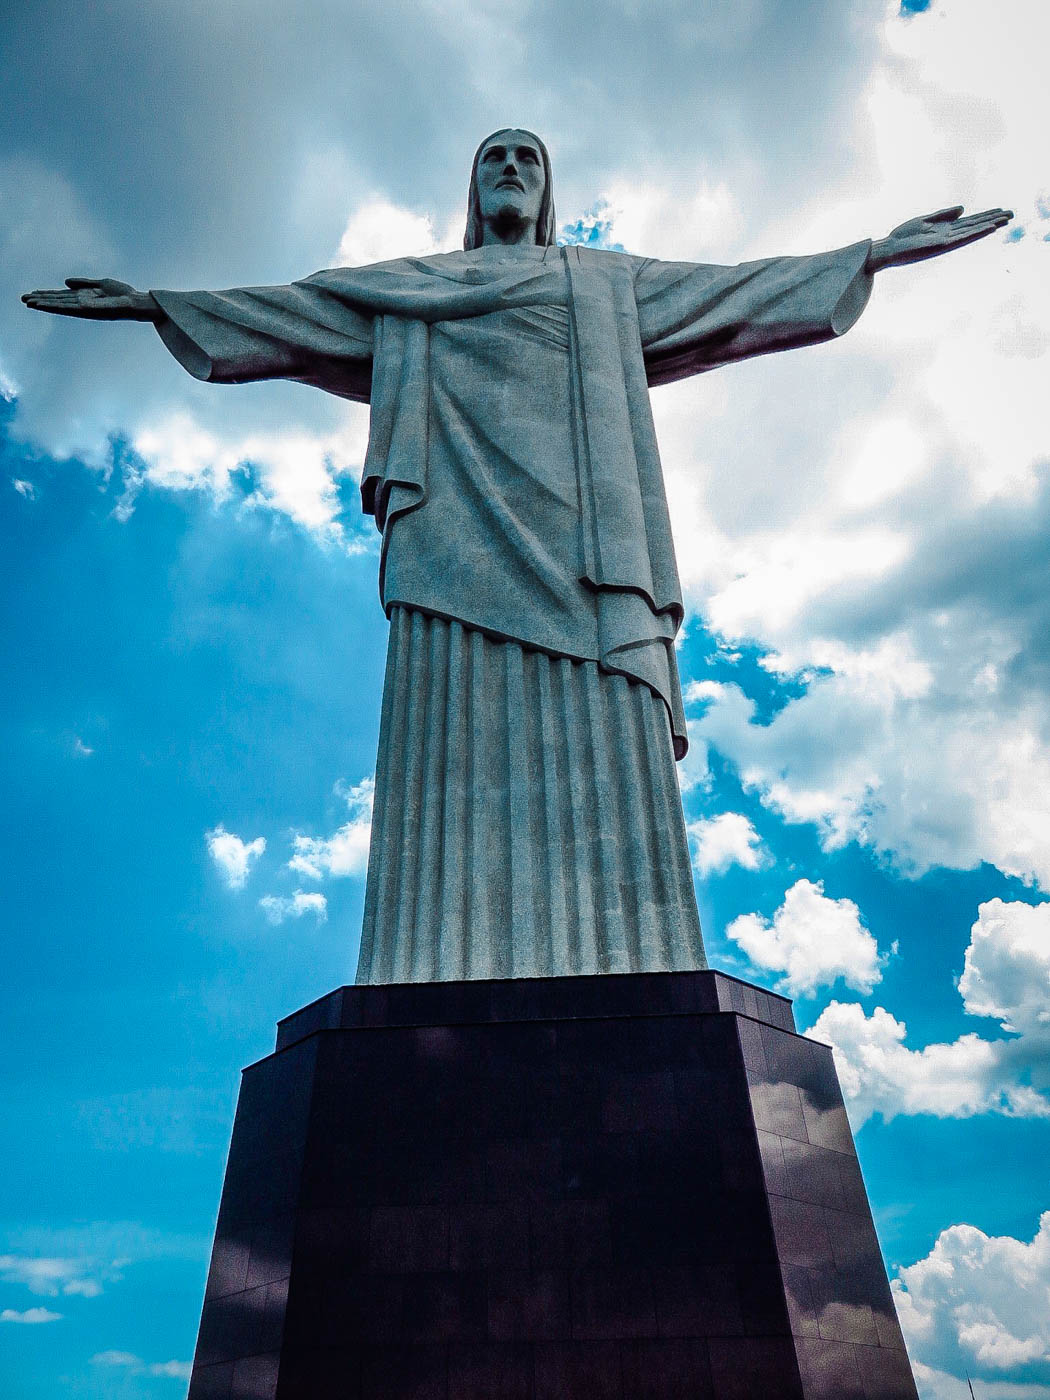 Christ the Redeemer I South America Travel Bucket List. 90 Awesome Things to do in South America When Backpacking and Travelling #southamerica #bucketlist #traveldestinations